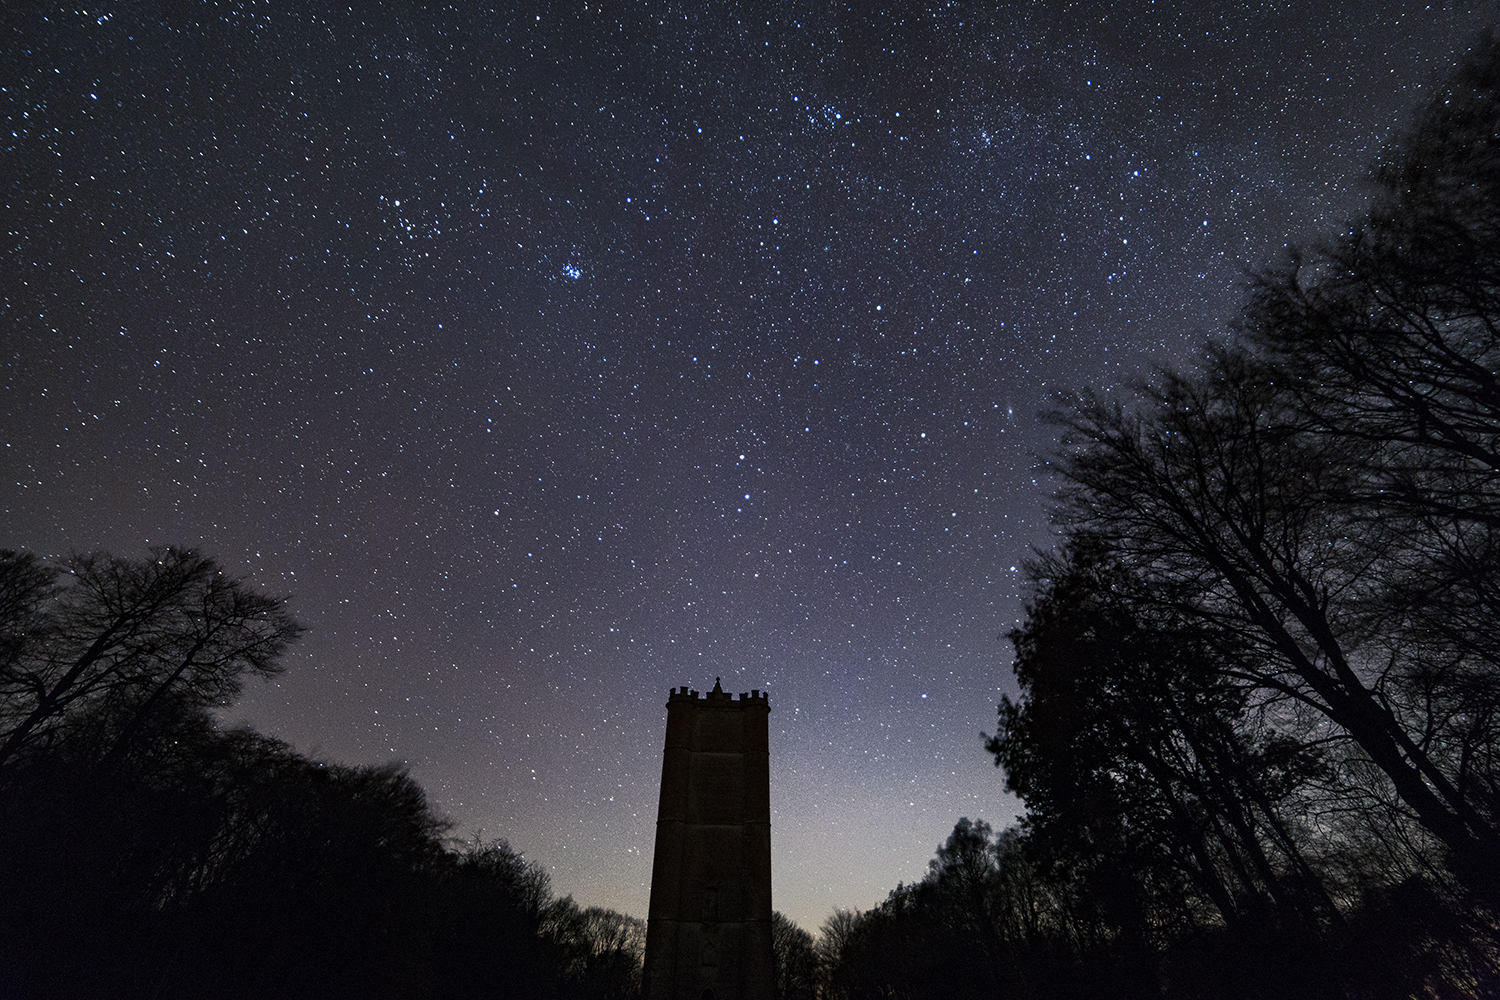 Cranborne Chase, UK, Designated as International Dark Sky Reserve Image